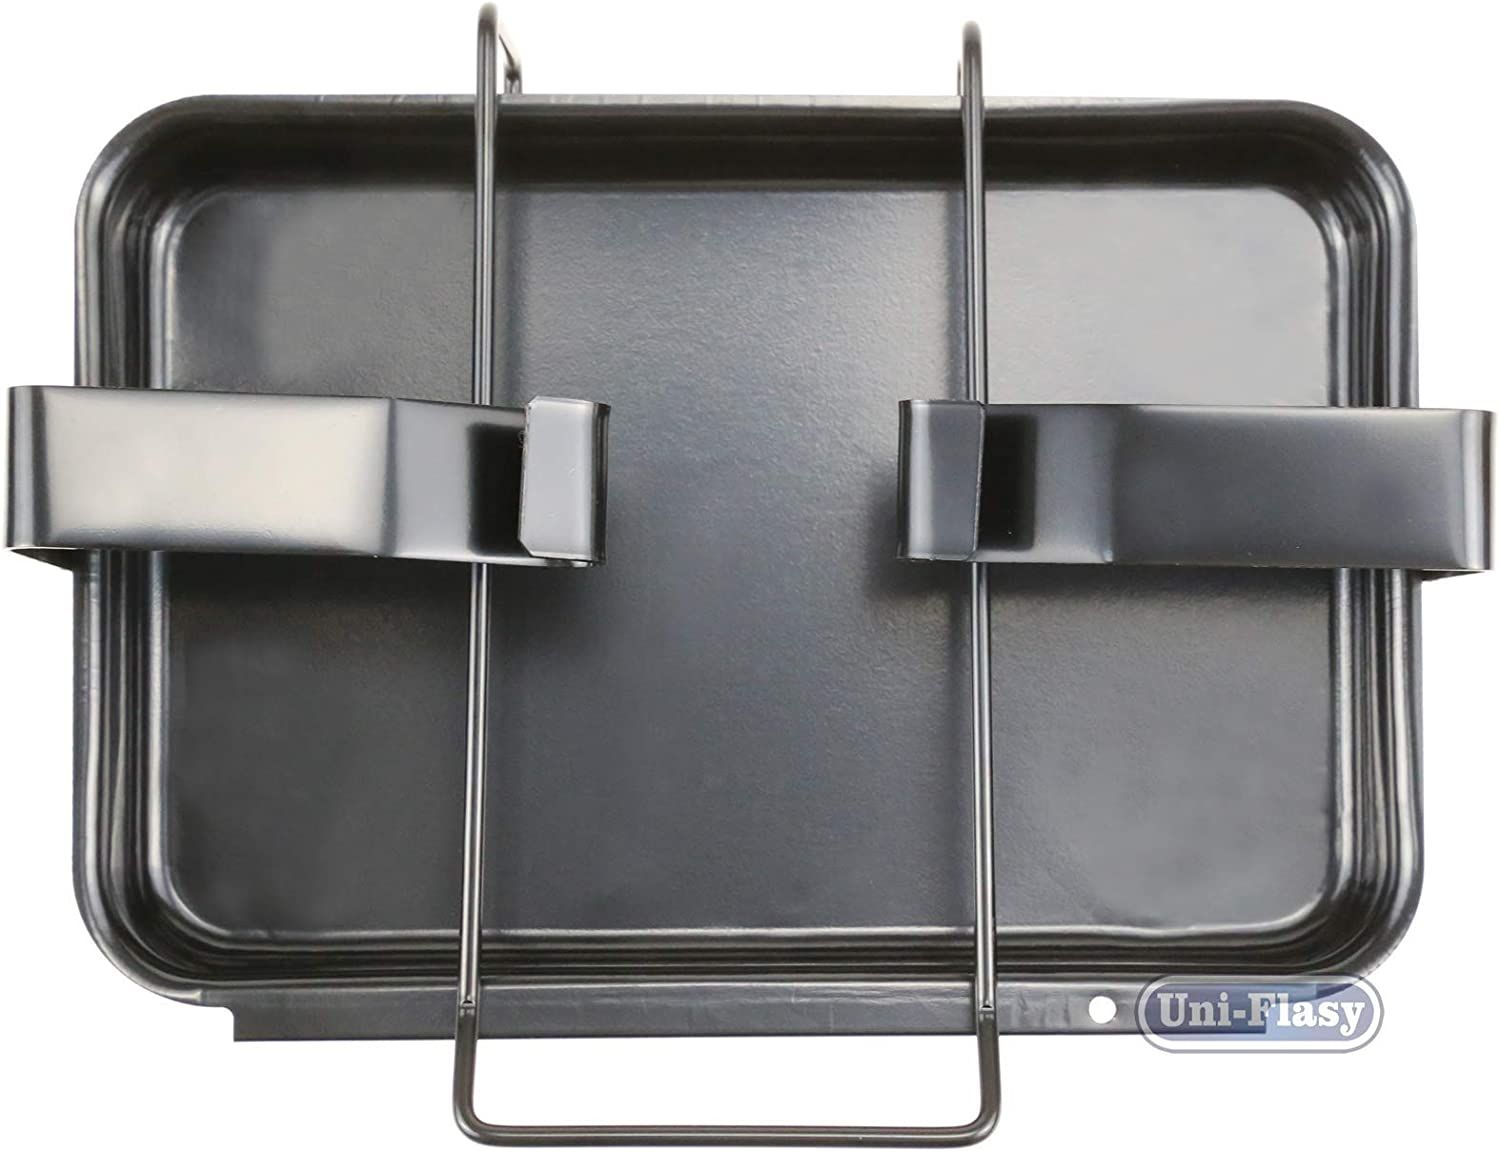 and Summit Grills Uniflasy 7515 Grill Catch Pan Holder//Drip Pan//Grease Collection Pan Replacement Parts for Weber Genesis 1000-5500 Platinum I//II Renewed Genesis Silver//Gold//Platinum Genesis II Series